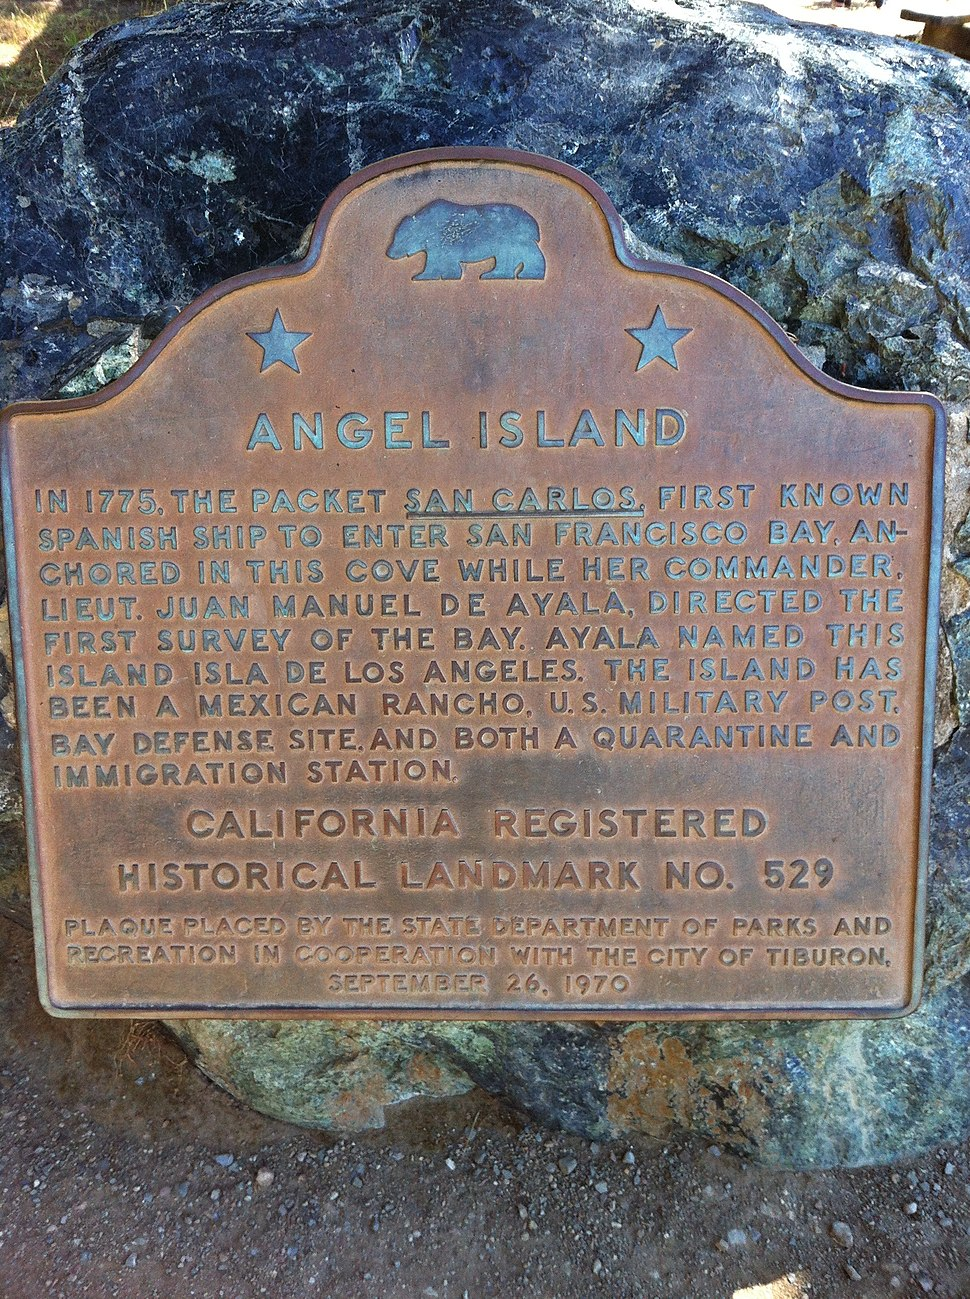 Angel island.jpeg